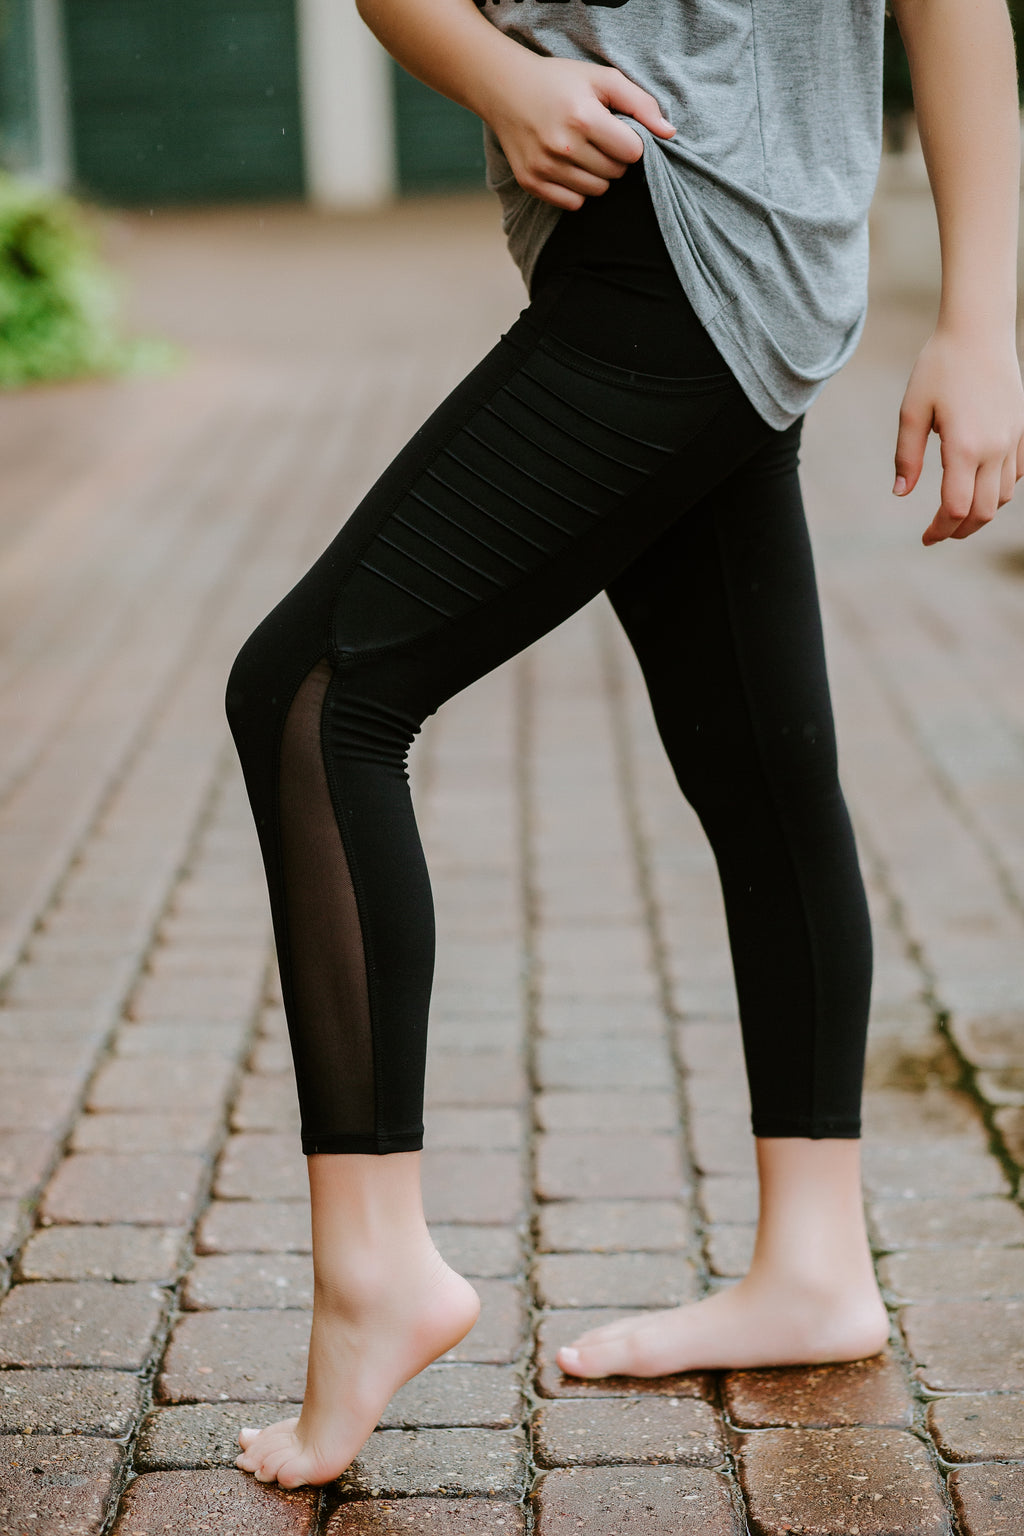 BLACK LEGGINGS/MESH SIDE POCKET